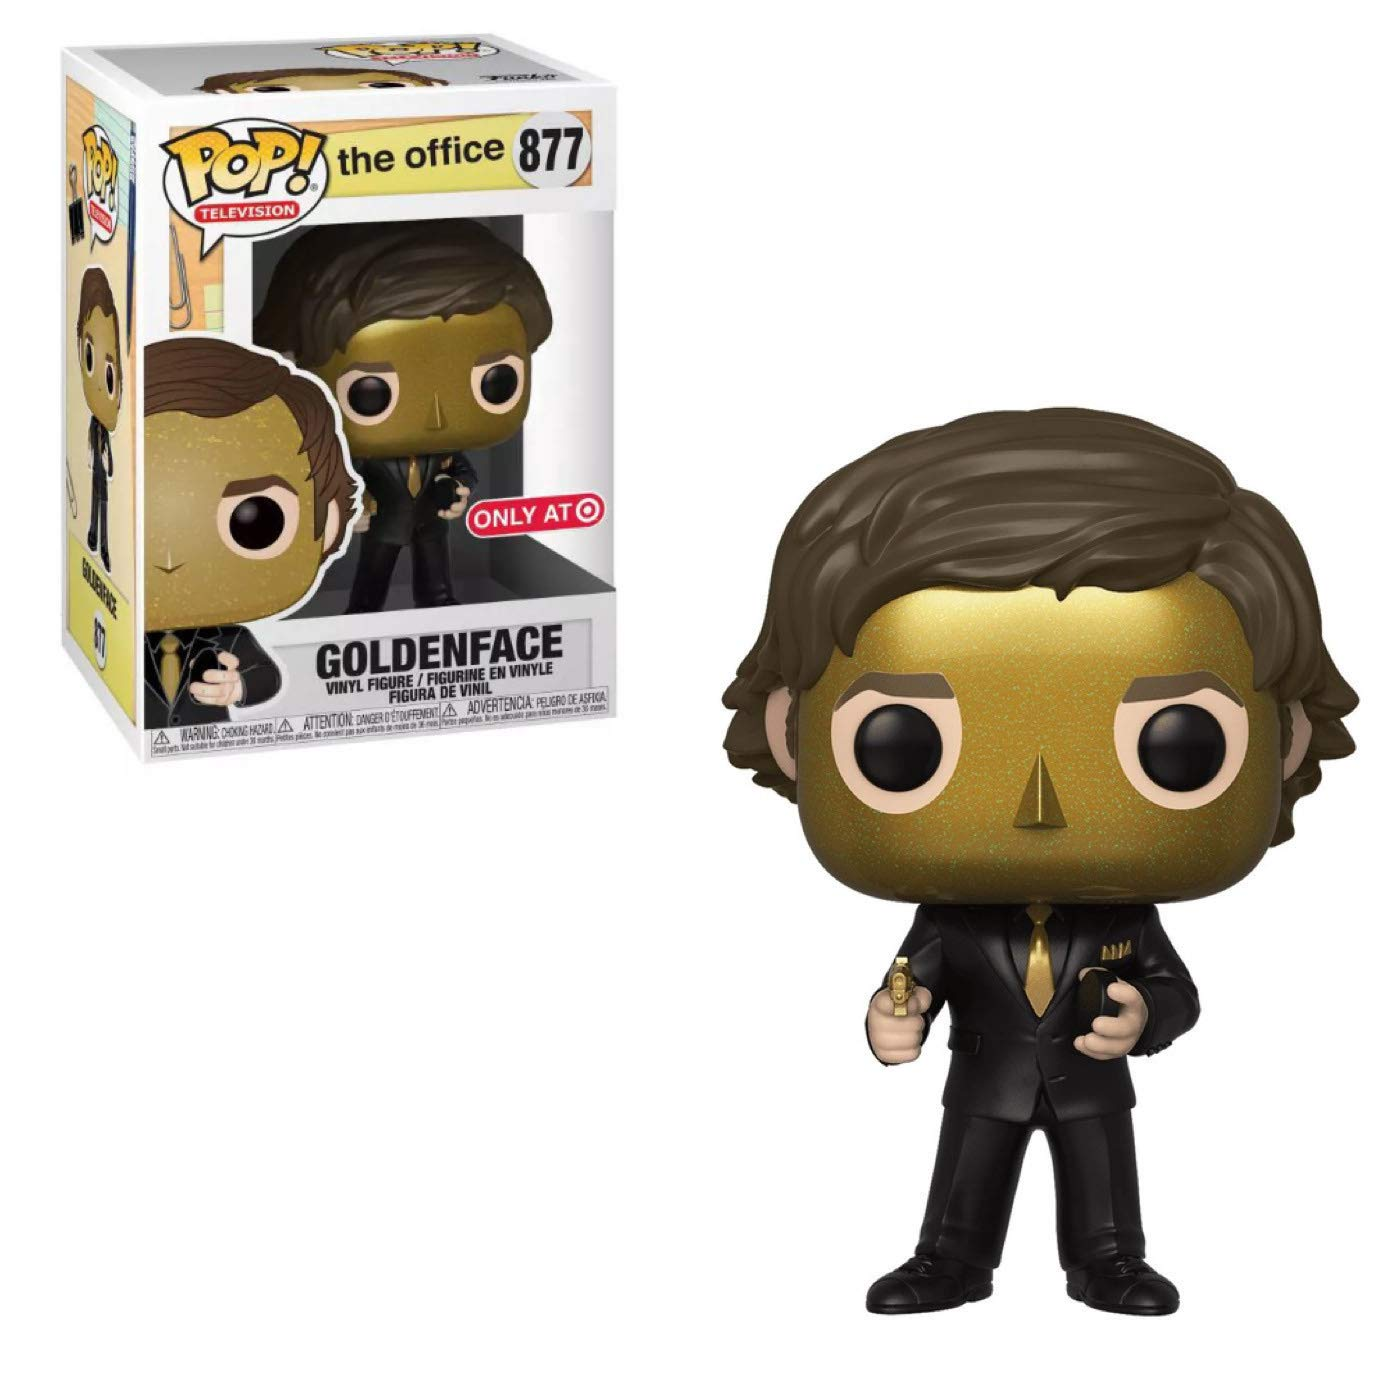 Funko Pop The Office Jim Halpert as Goldenface